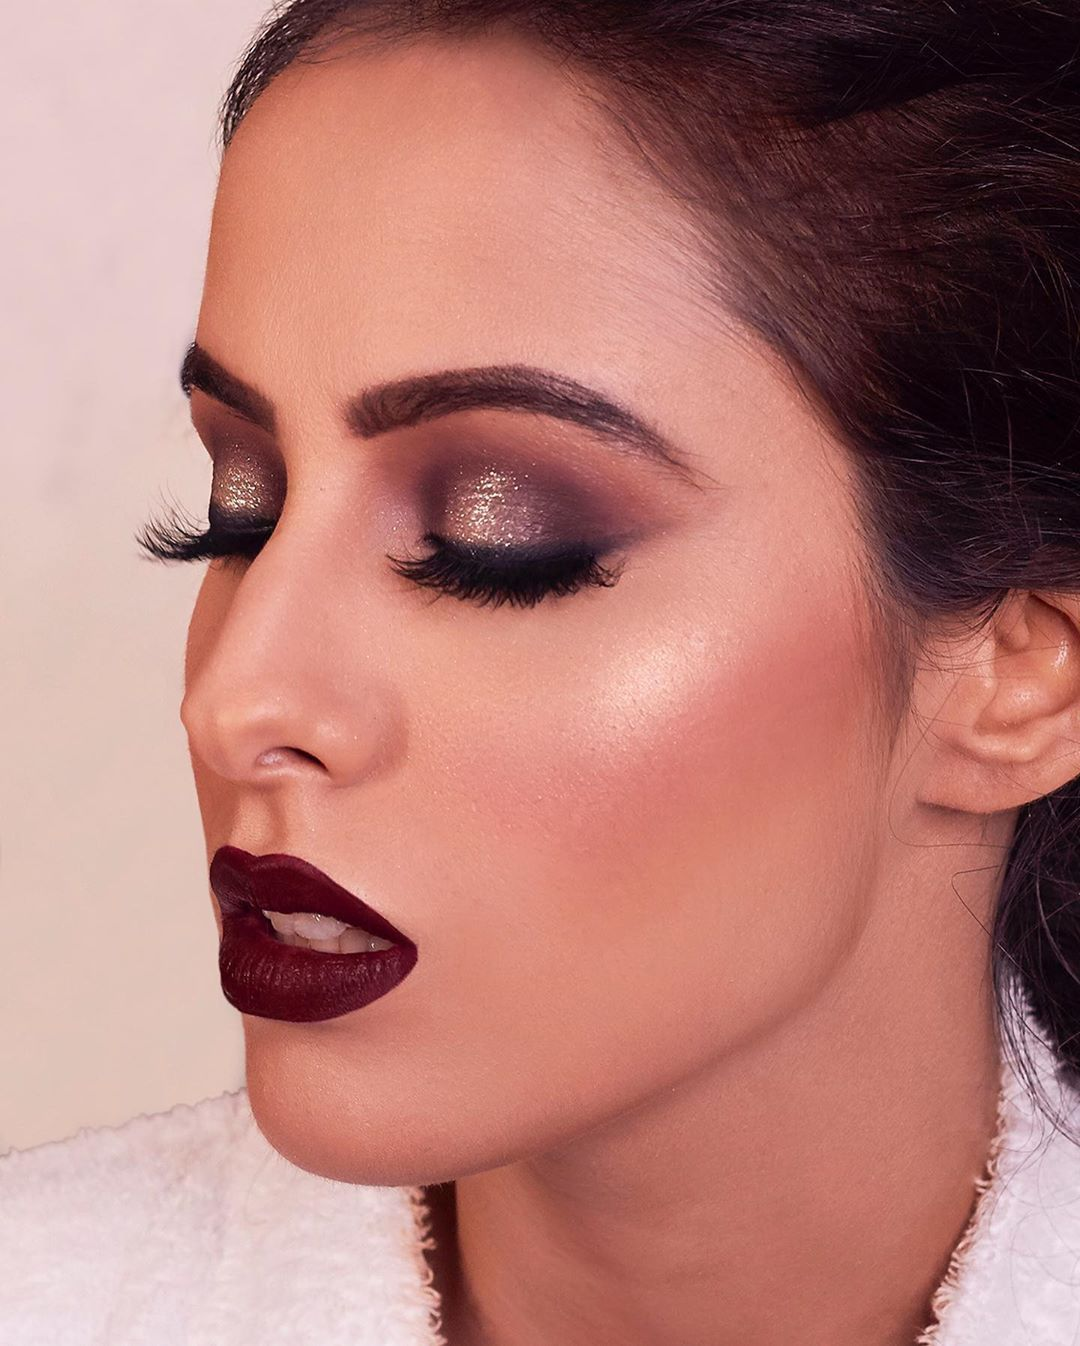 Here Are Some Indian Bridal Makeup Images To Give You Some Much-Needed Makeup Inspiration -   13 evening makeup 2018 ideas